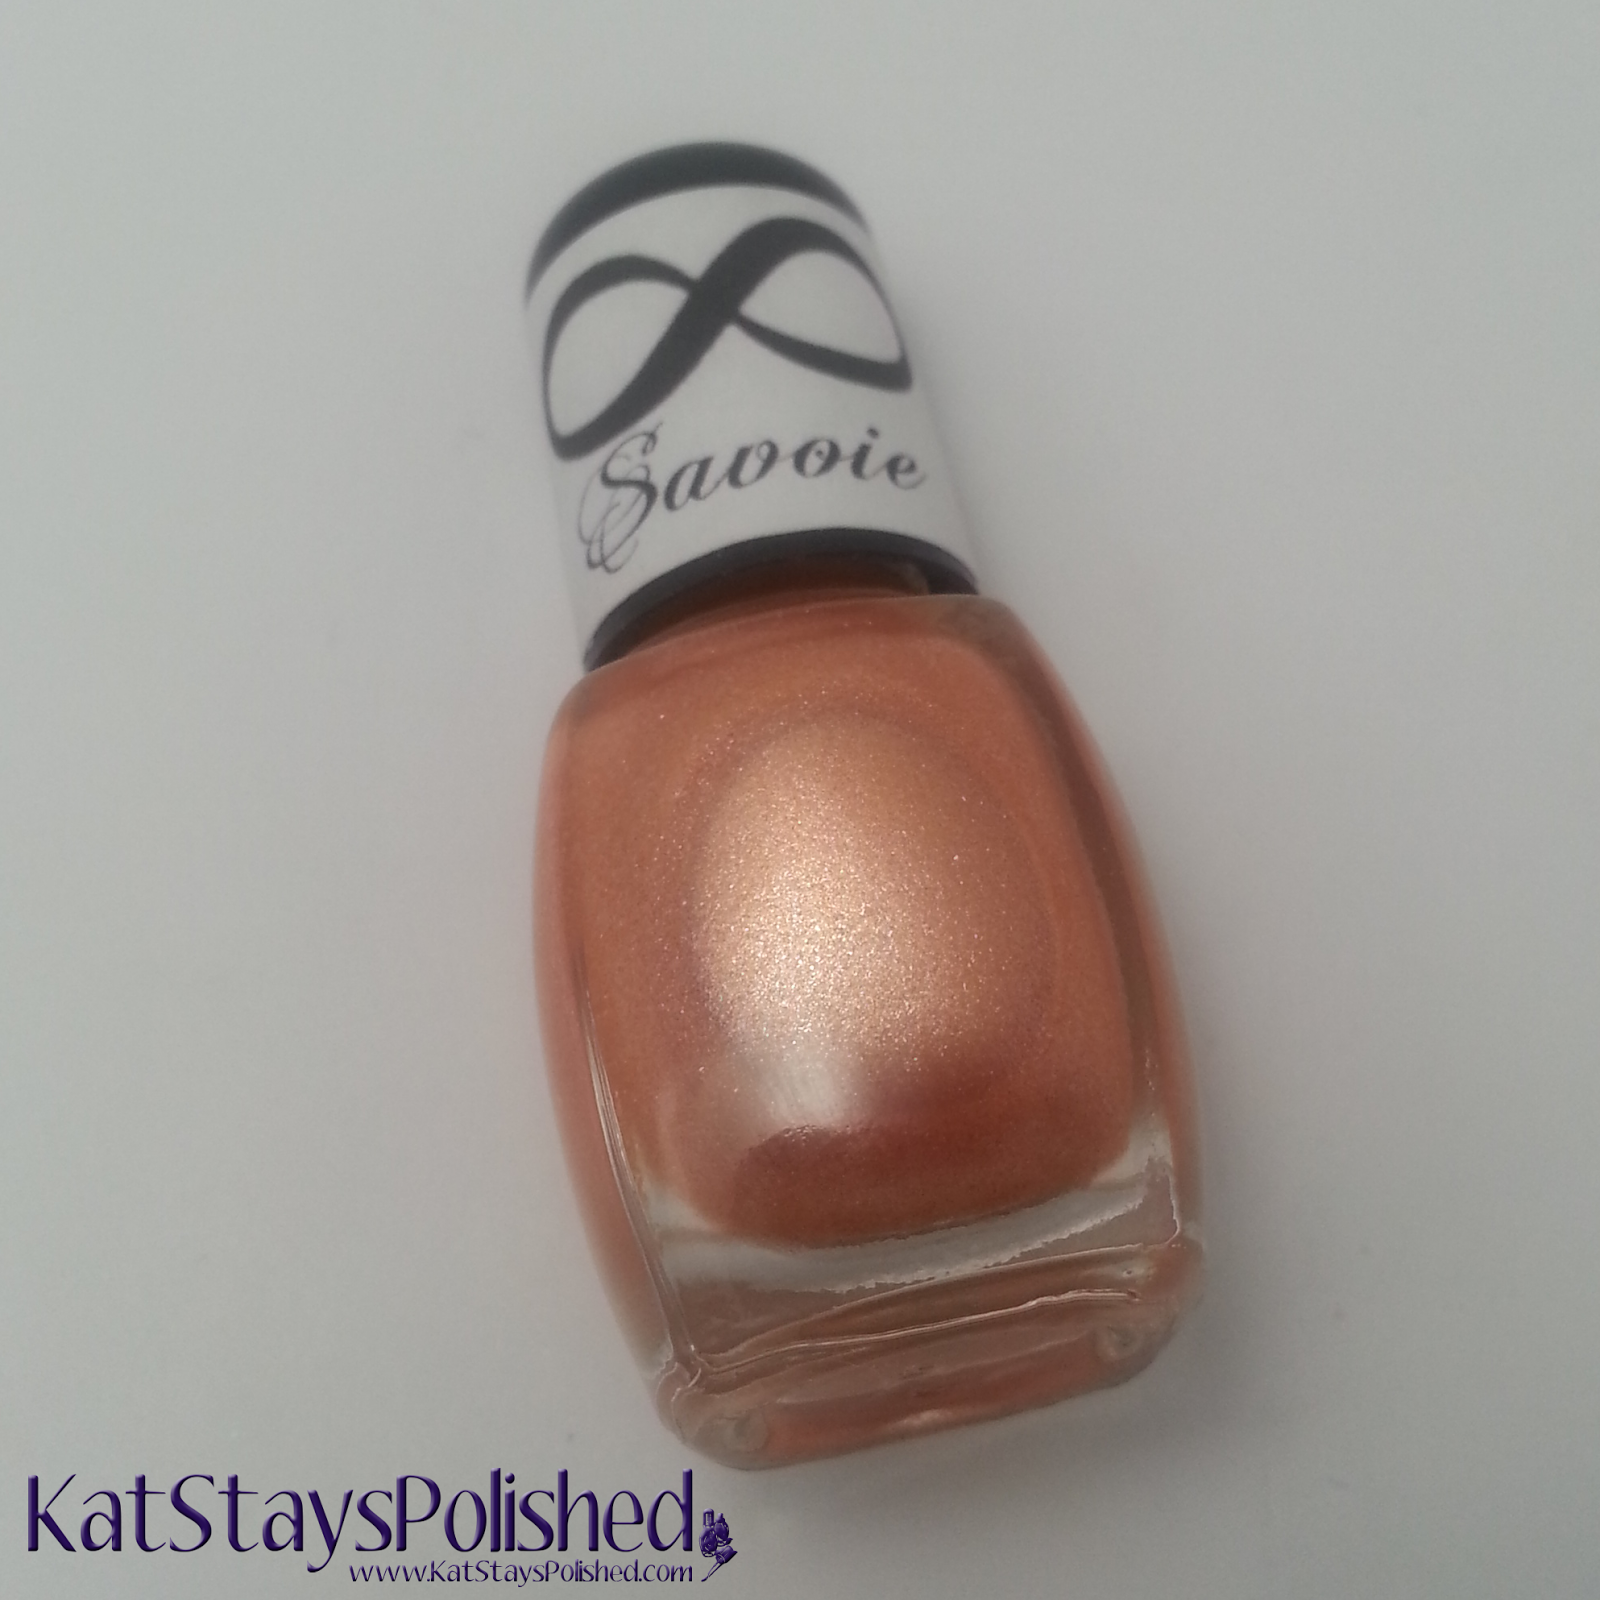 Savoie - Aren't You a Peach | Kat Stays Polished